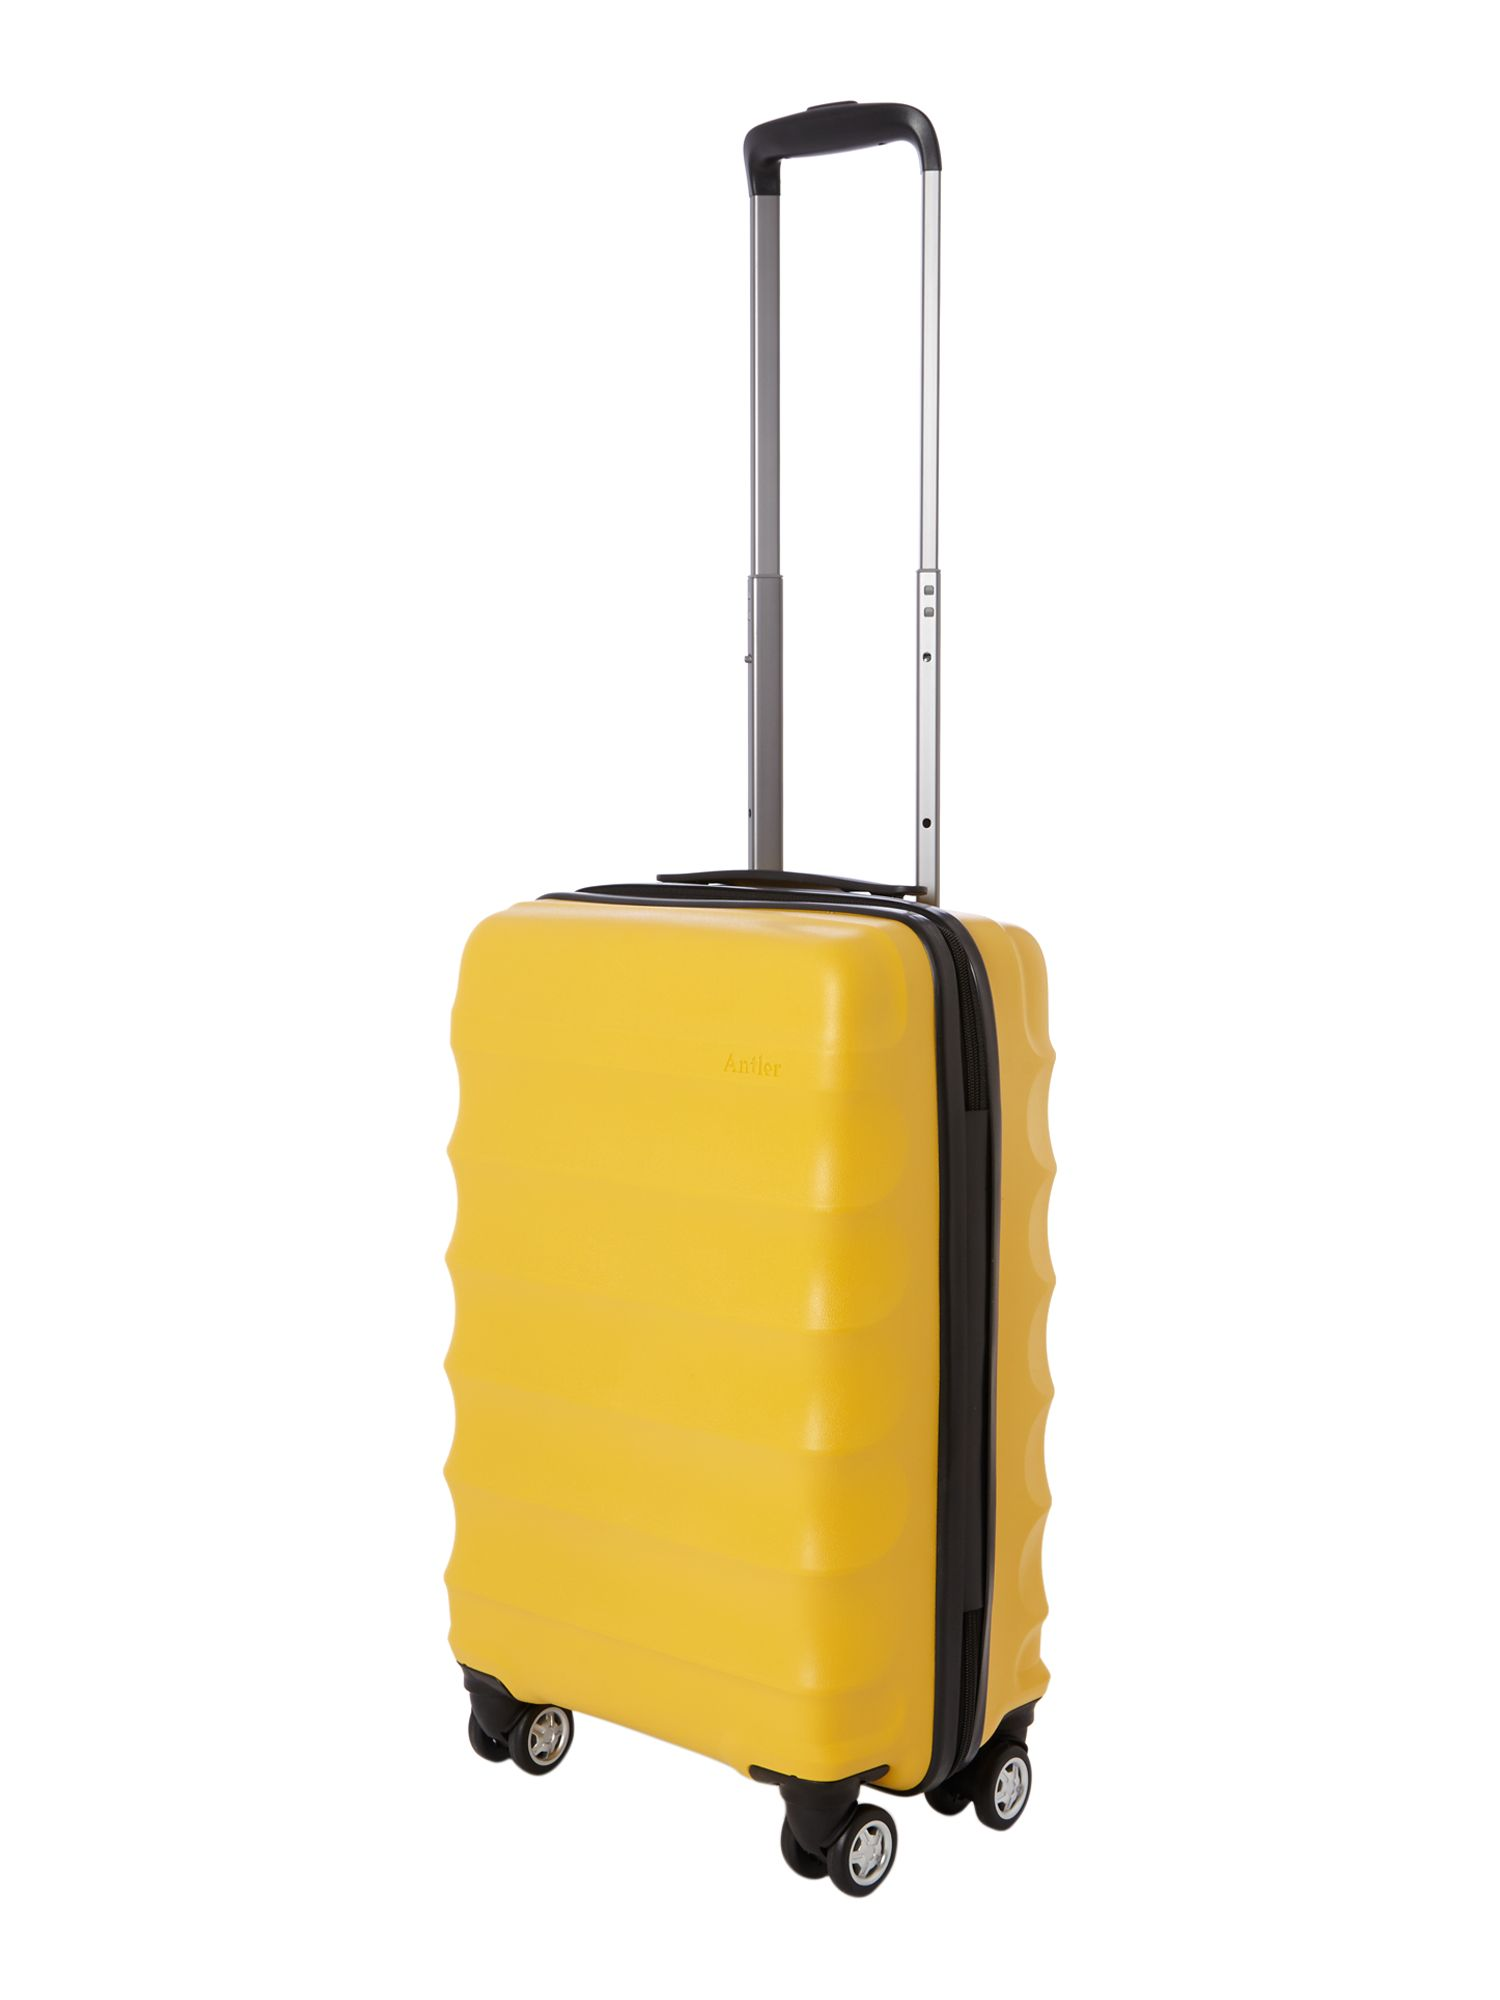 Juno 4 wheel panel yellow hard cabin rollercase